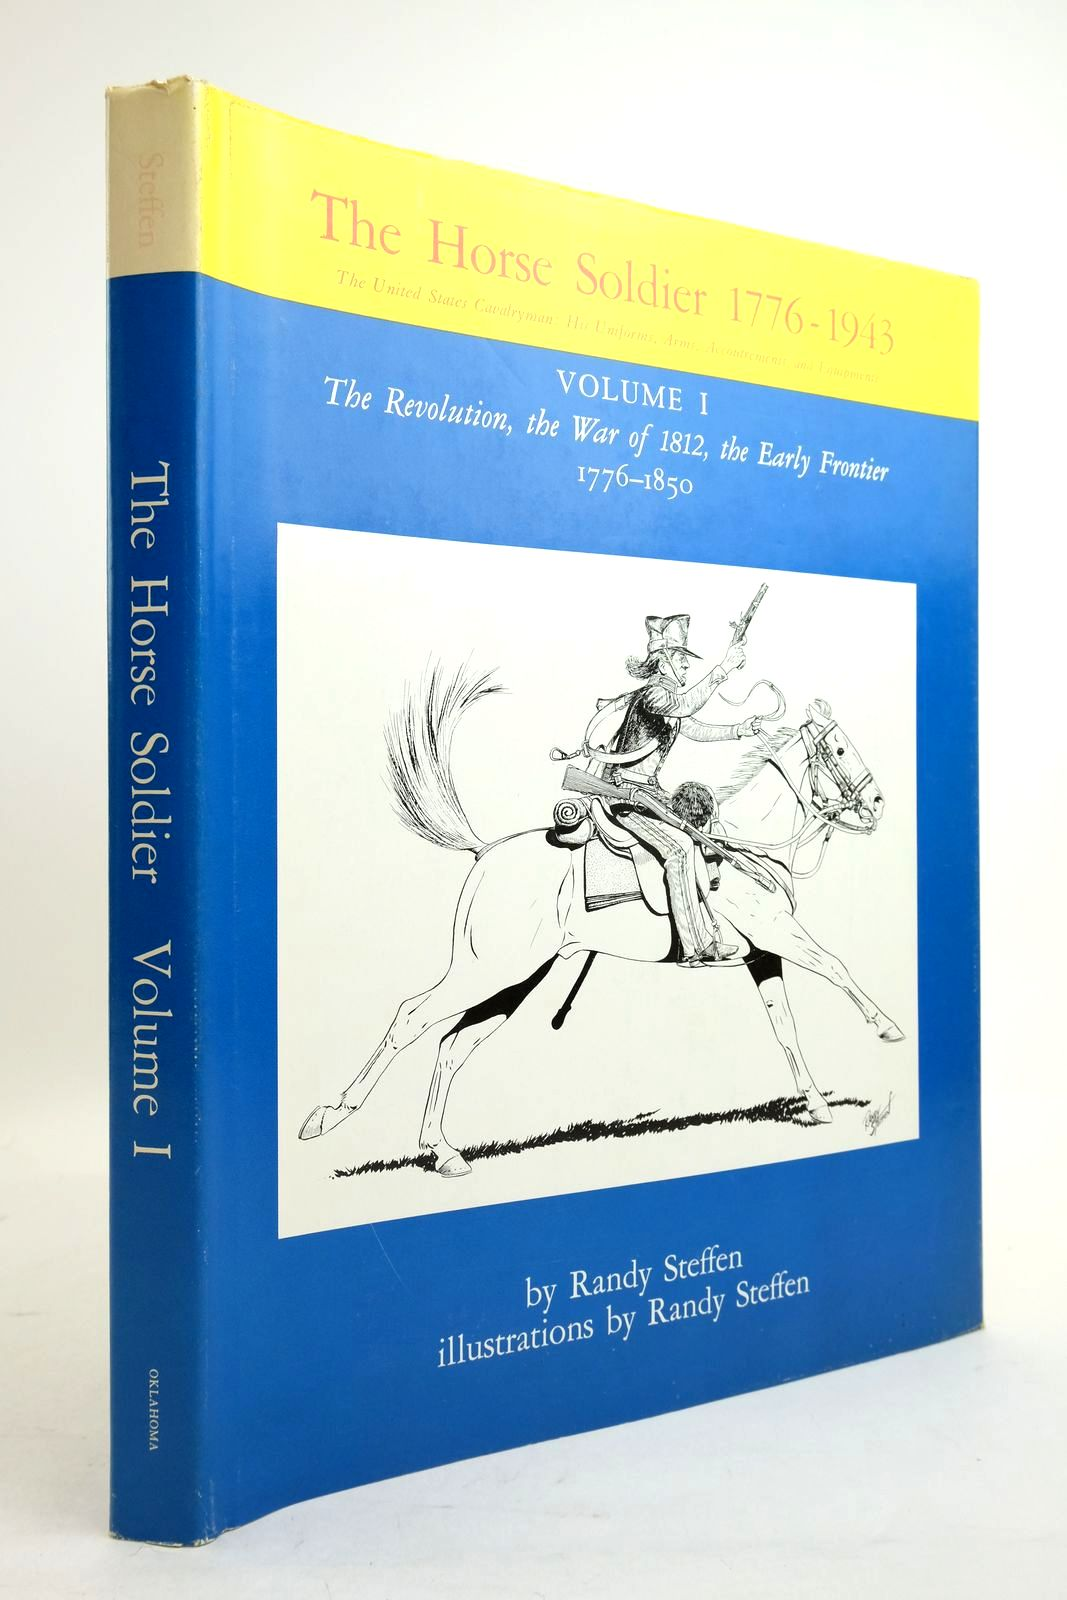 Photo of THE HORSE SOLDIER 1776-1943: VOLUME I: THE REVOLUTION, THE WAR OF 1812, THE EARLY FRONTIER 1776-1850 written by Steffen, Randy illustrated by Steffen, Randy published by University of Oklahoma Press (STOCK CODE: 2134513)  for sale by Stella & Rose's Books